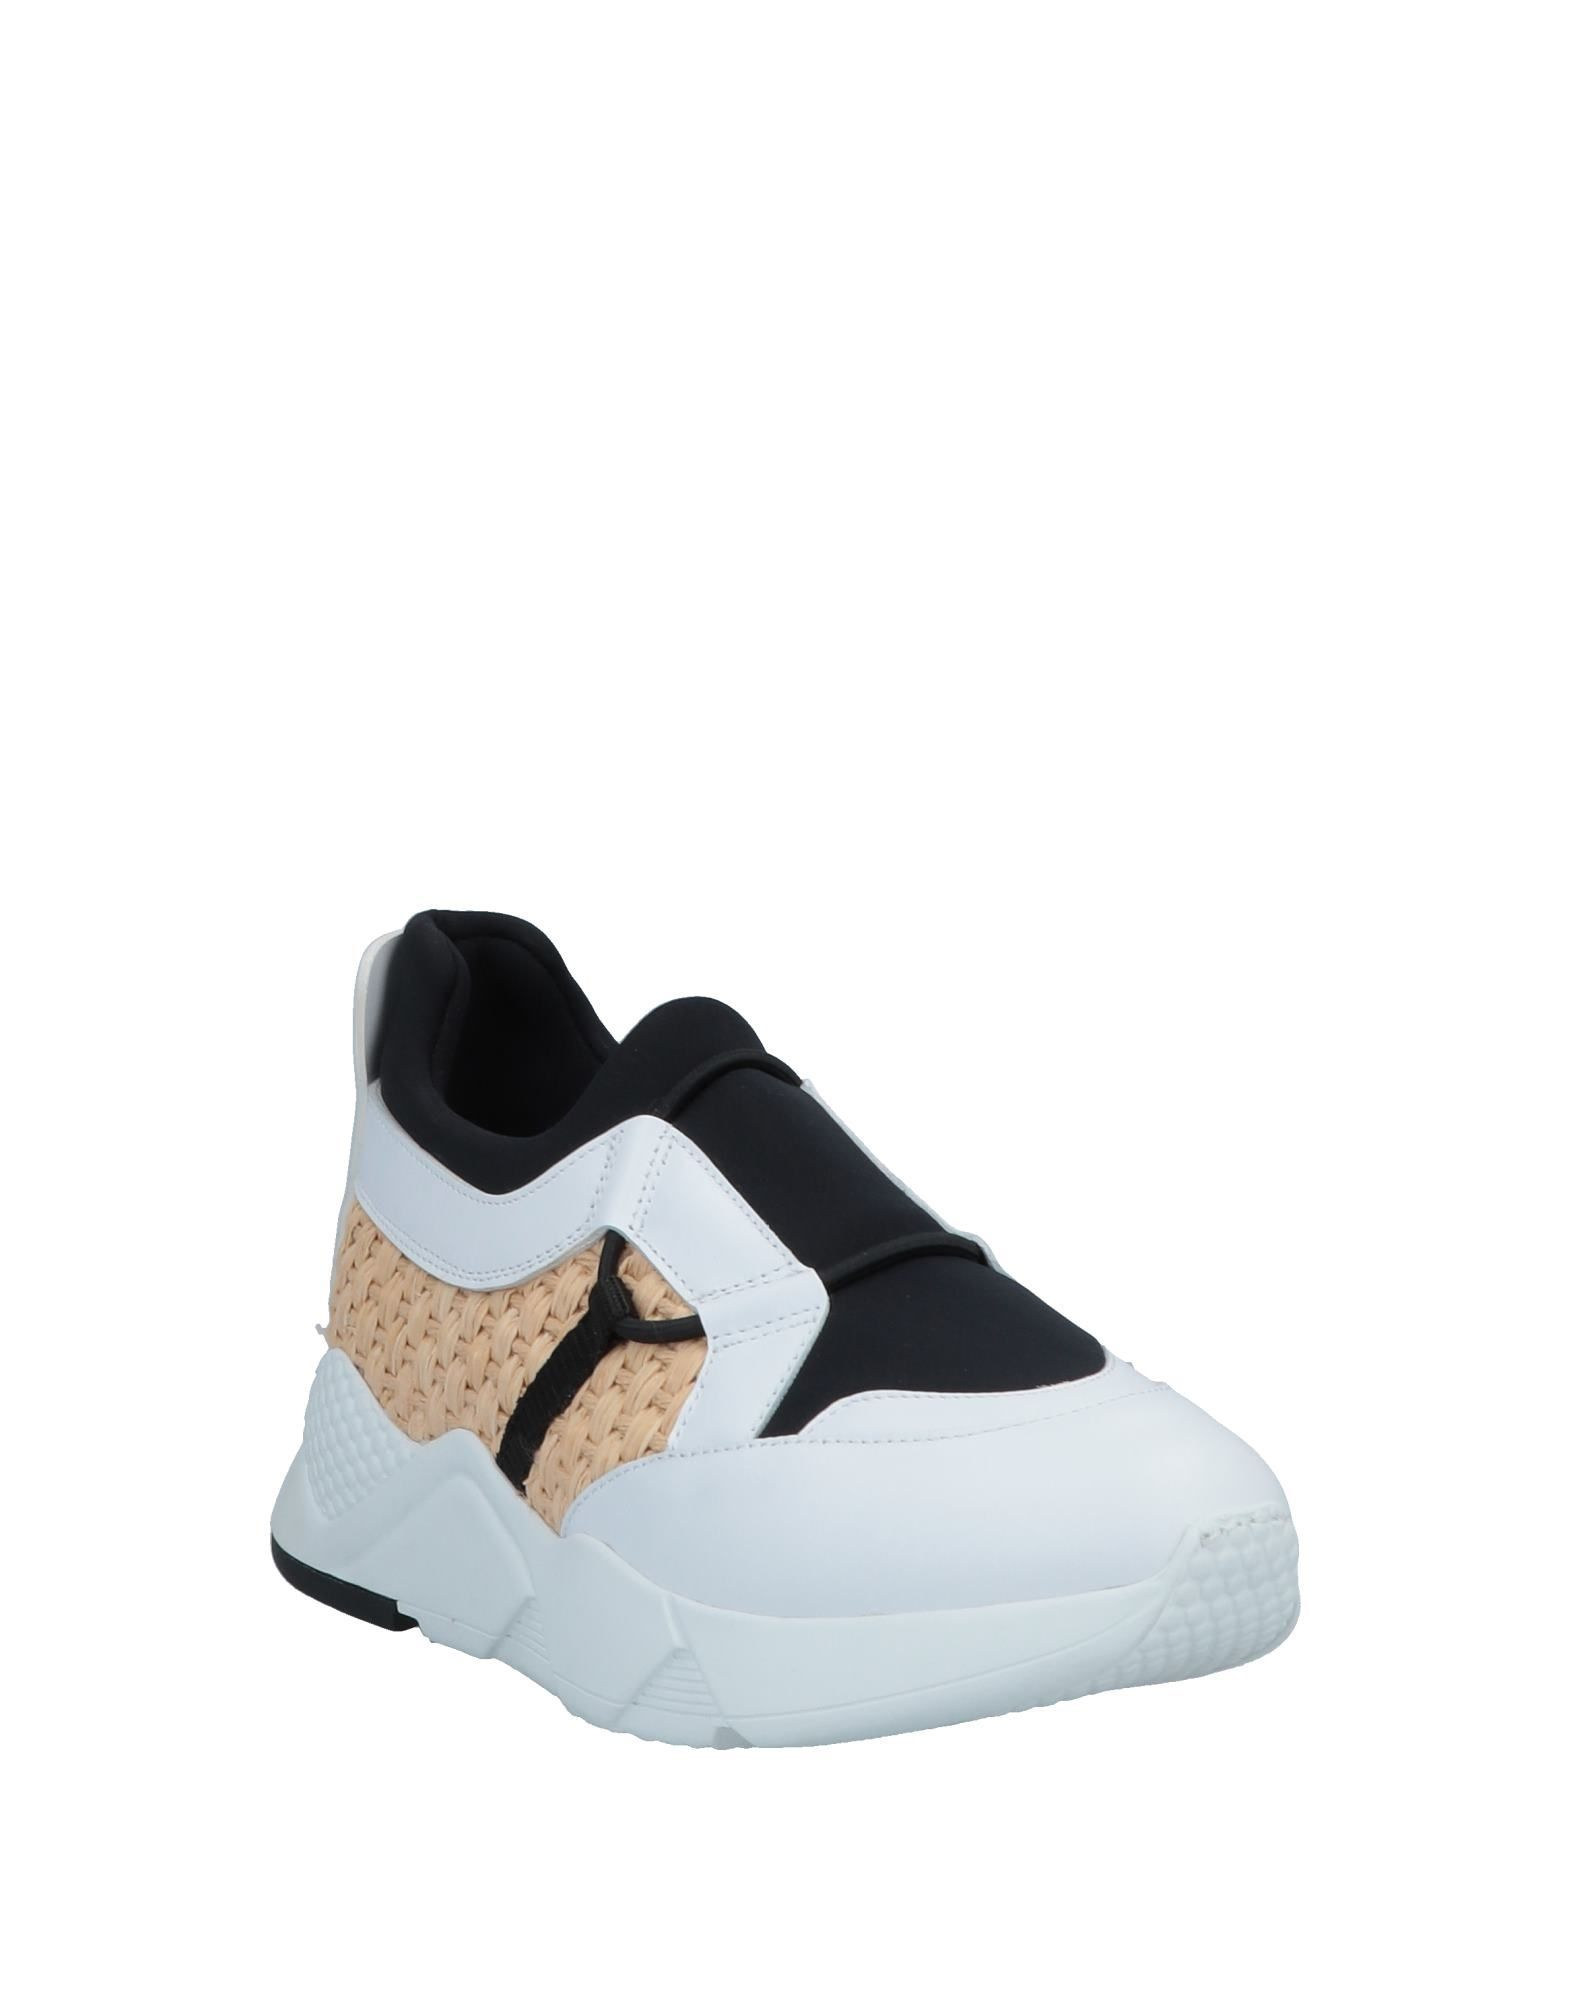 Clergerie Women's Low-Top & Sneakers Black Leather